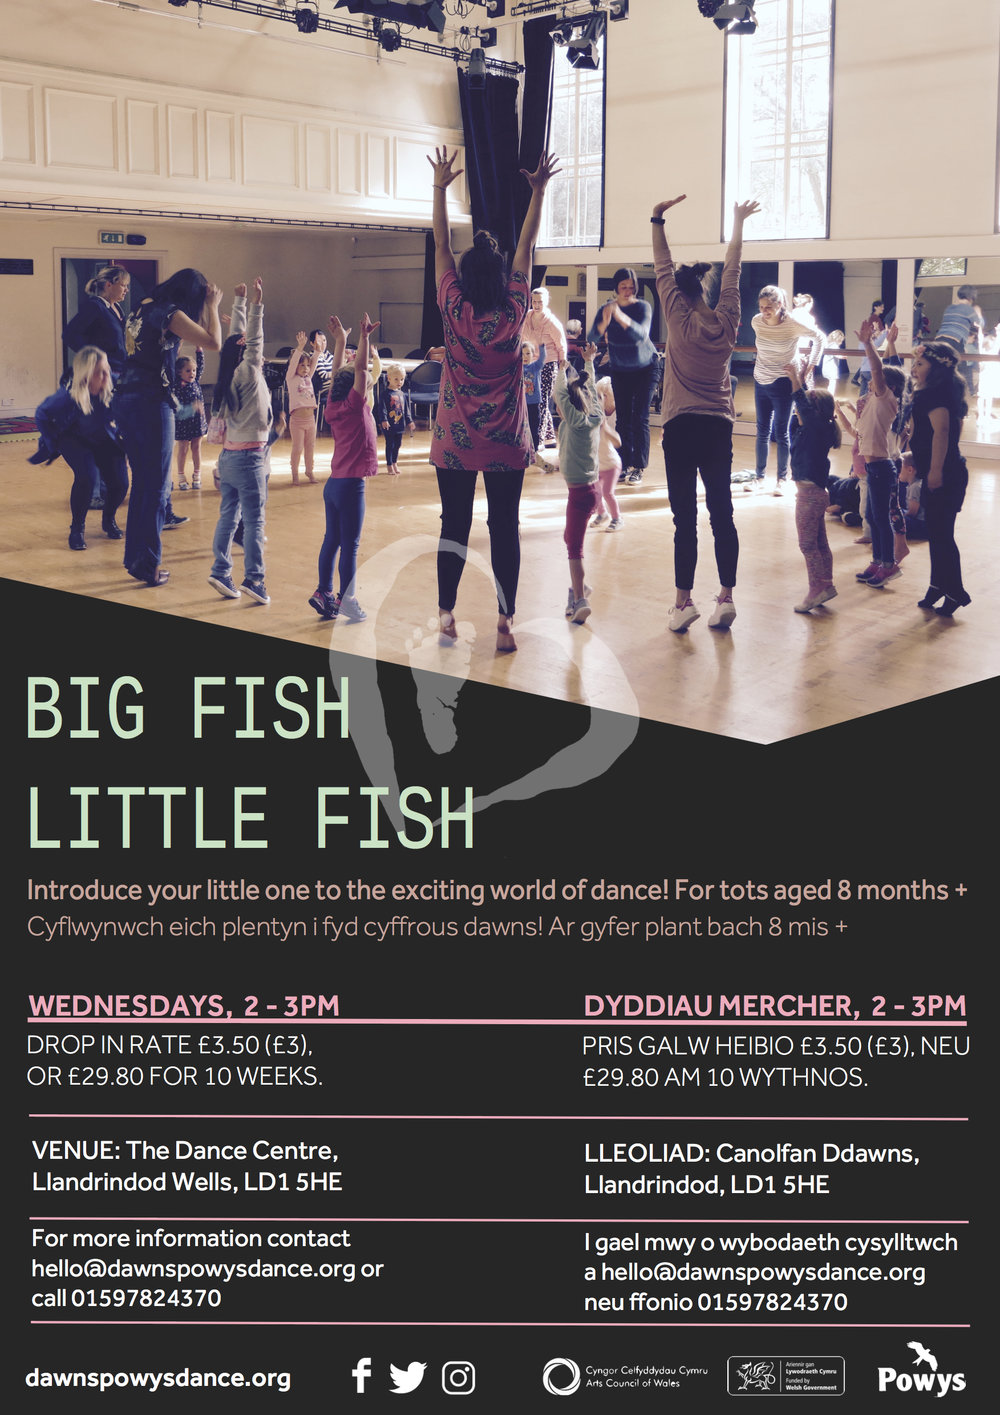 BIG FISH LITTLE FISH LLANDRINDOD.jpg